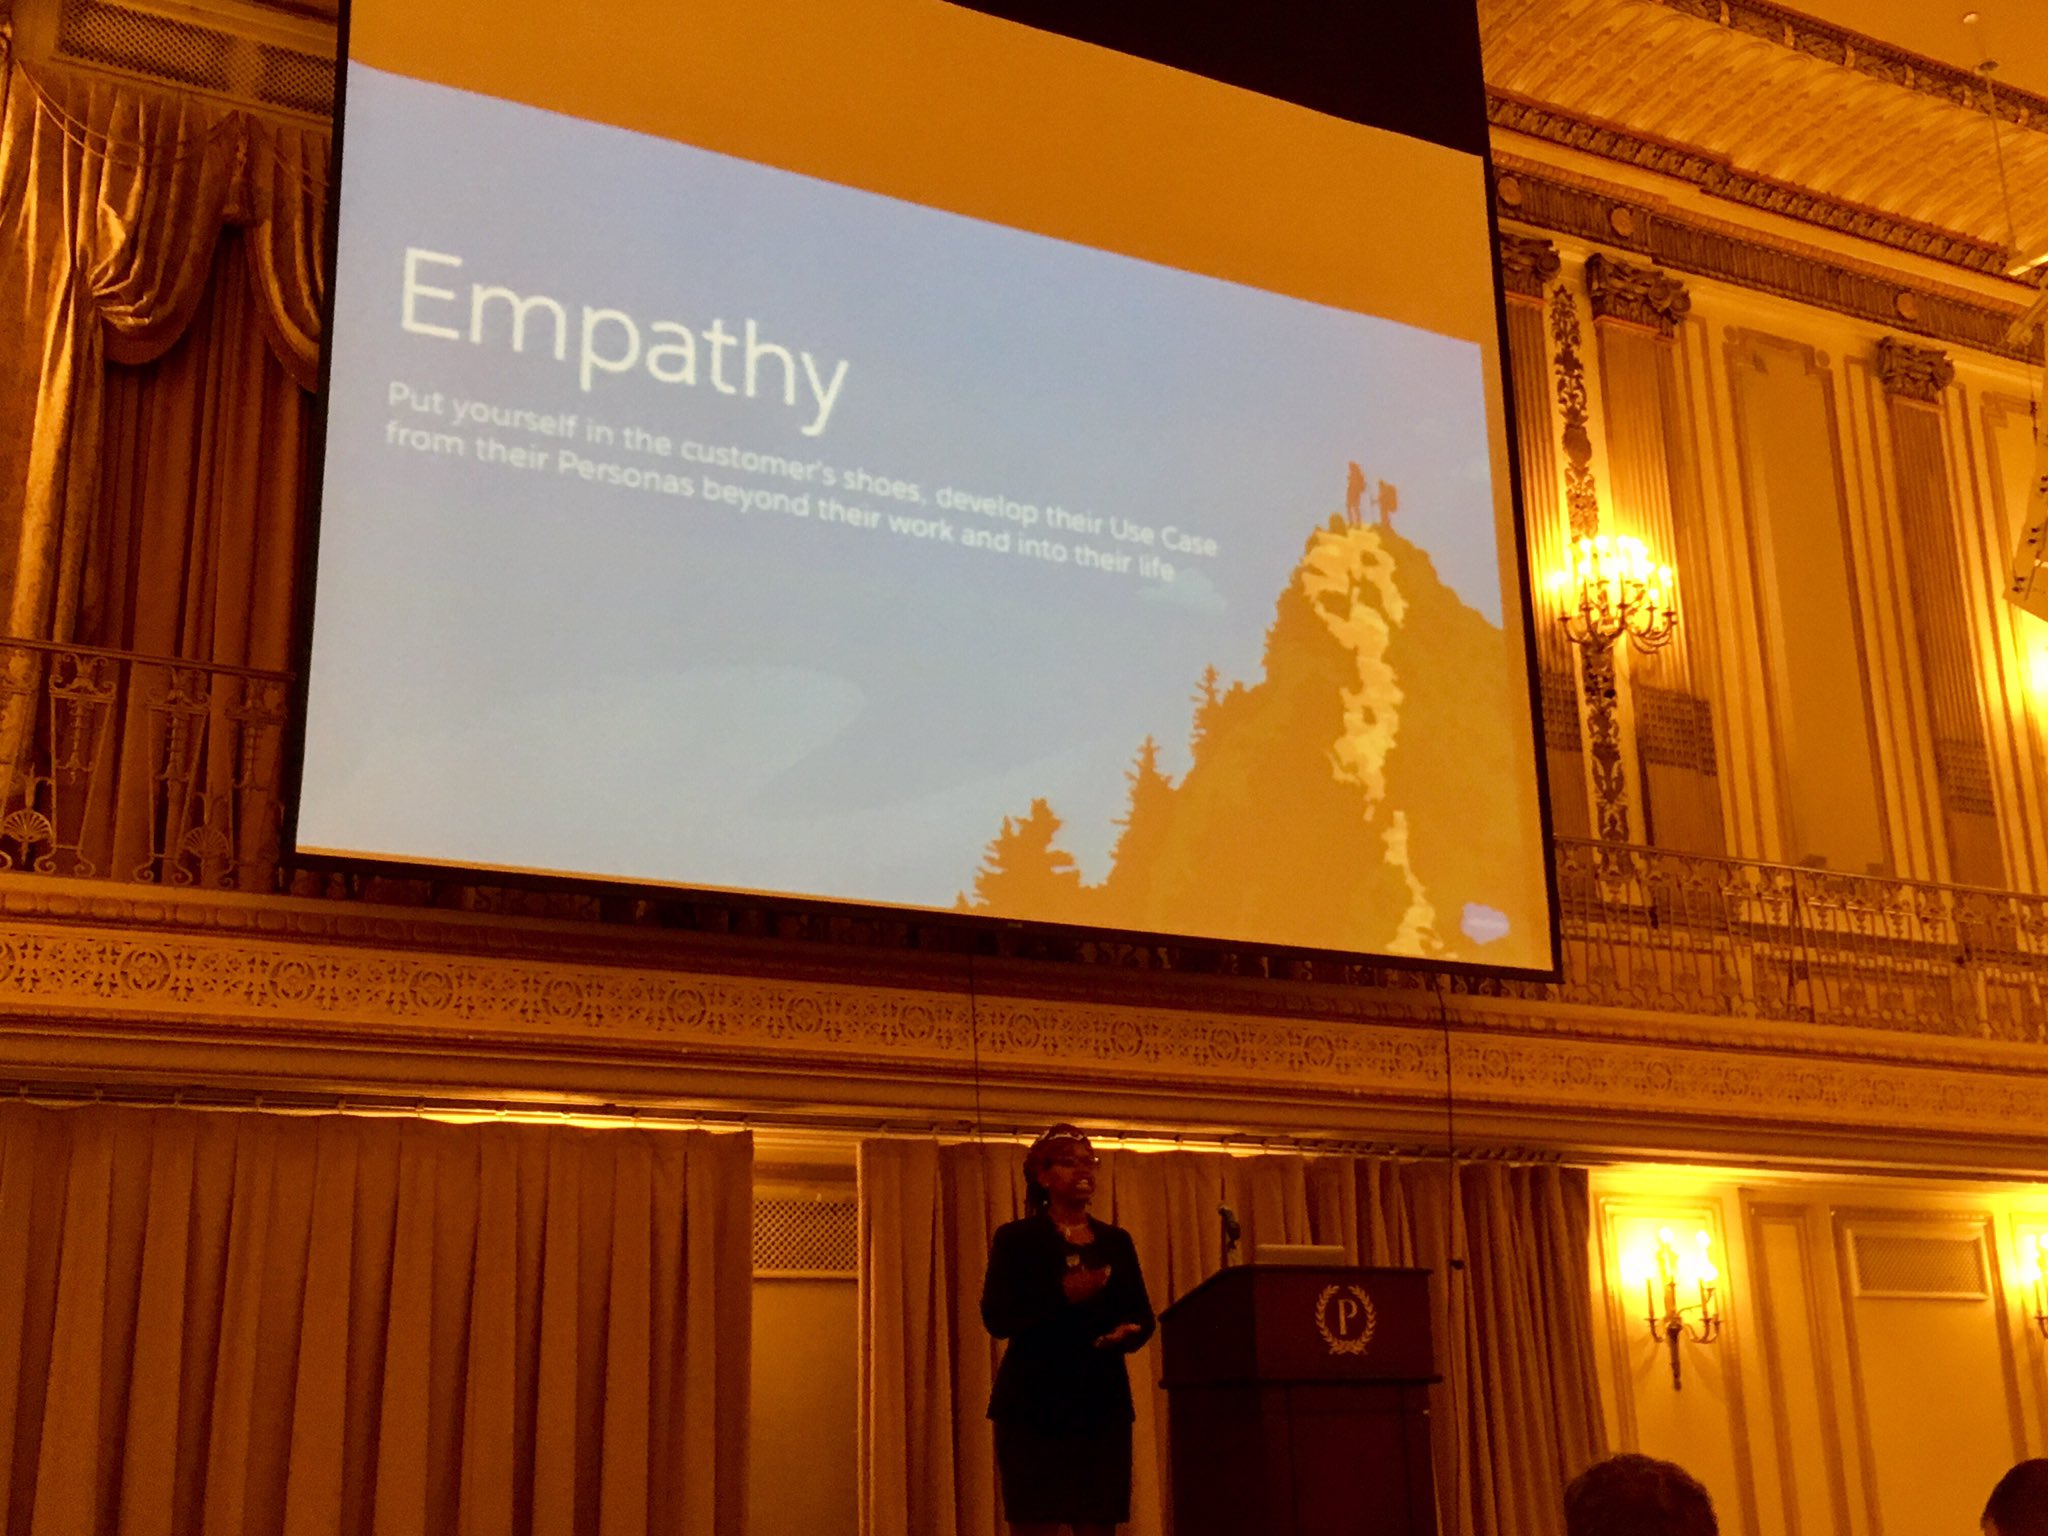 """Empathy is a transformational quality of life."" @iAyori #MWD17 https://t.co/bx2P4F129x"